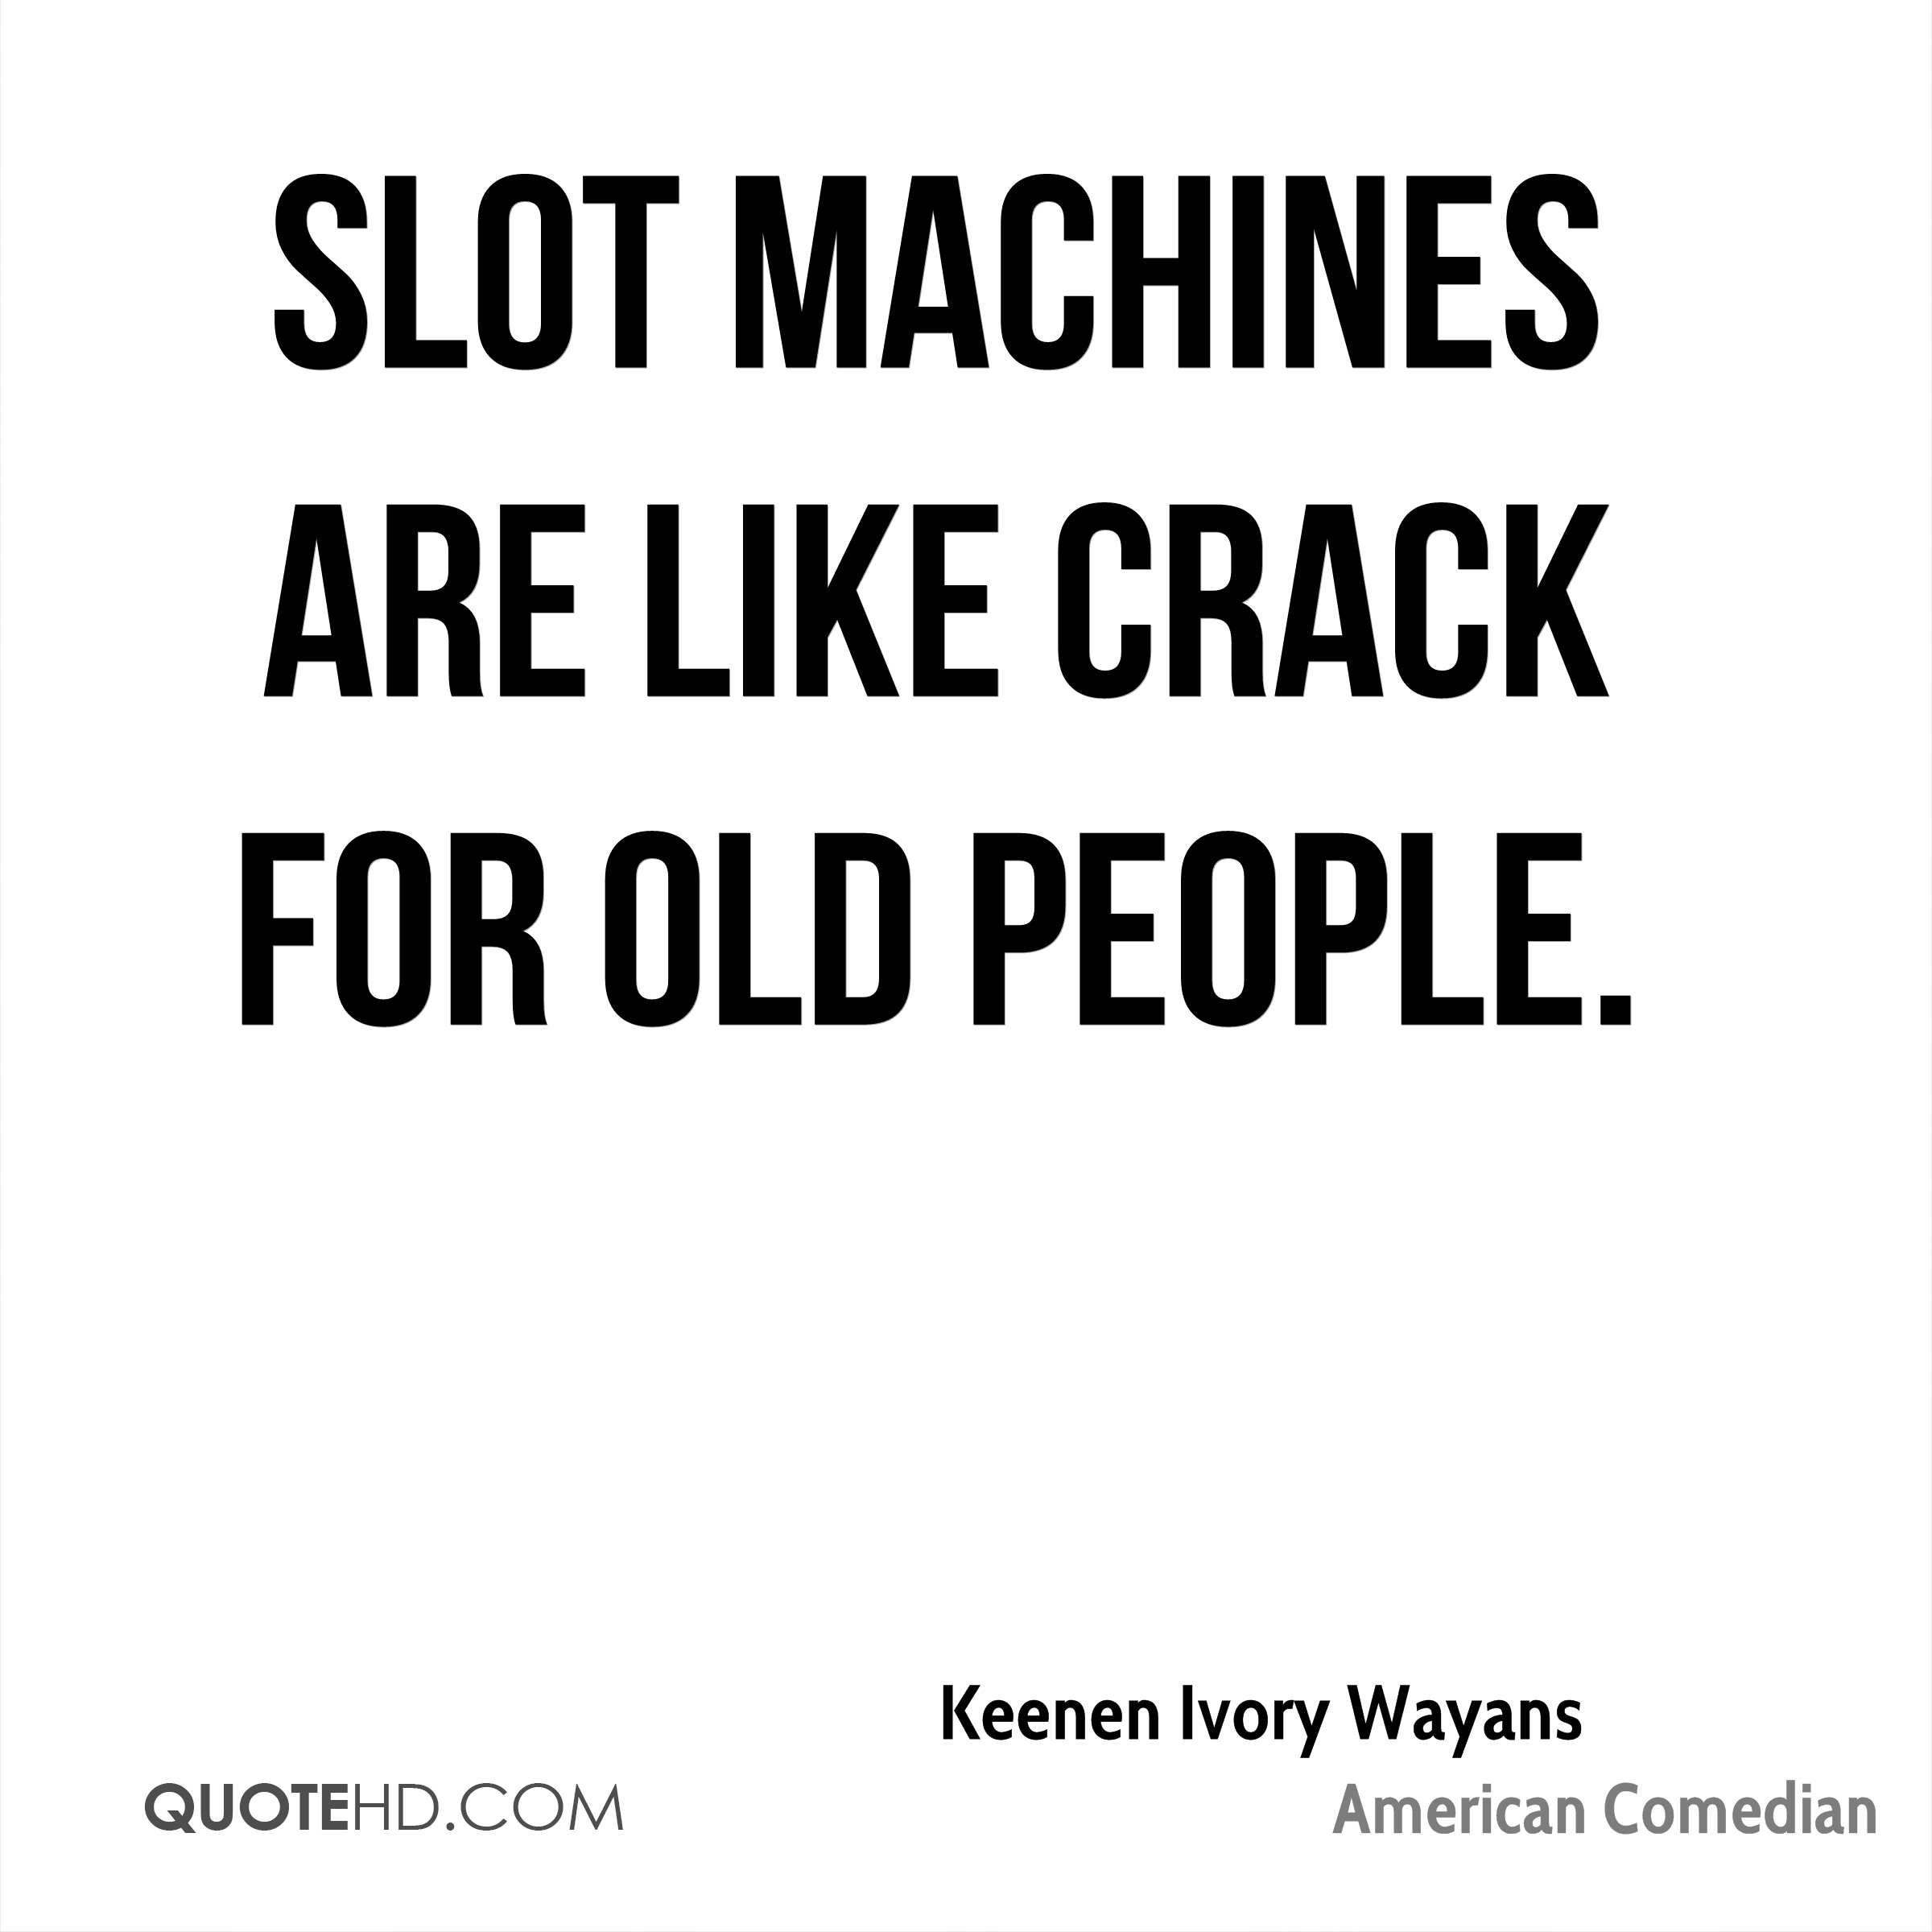 Slot machines are like crack for old people.